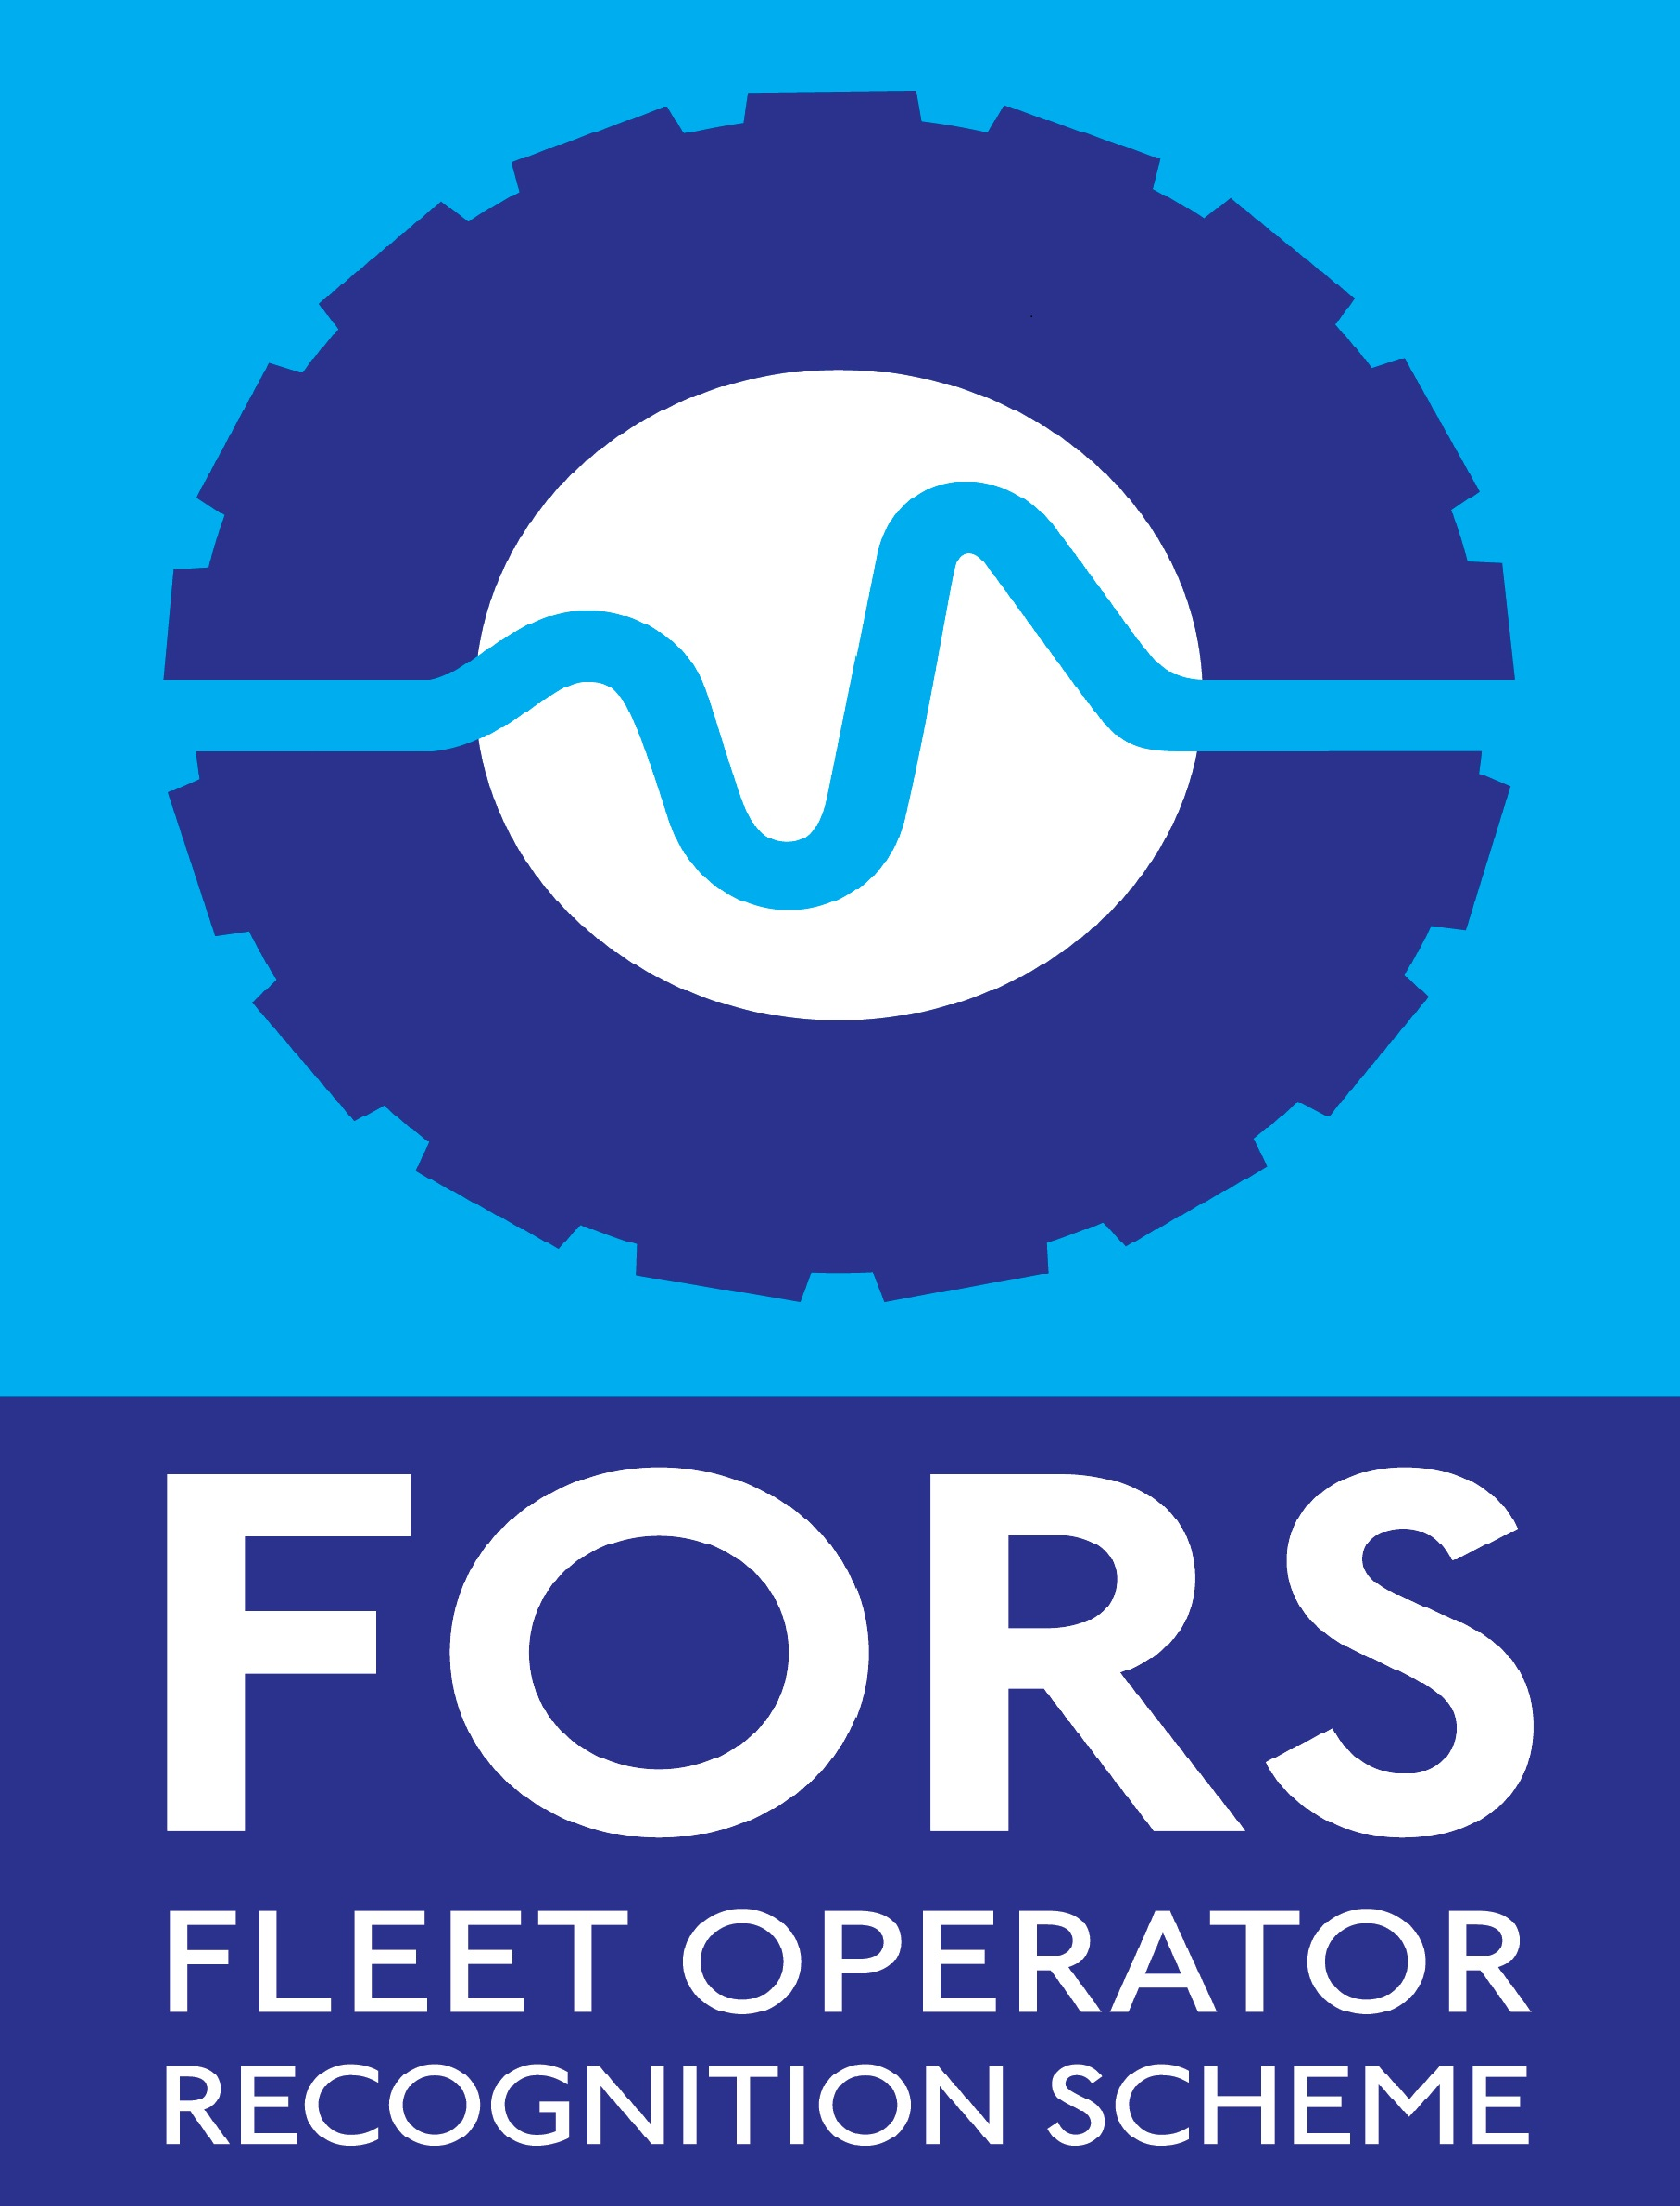 Roland Young Ltd achieve FORS - The Company is proud to have achived Bronze FORS accreditation in the Fleet Operator Recognitions Scheme. This acreditation is testimony to the high standards and safety systems to which the Company operates.